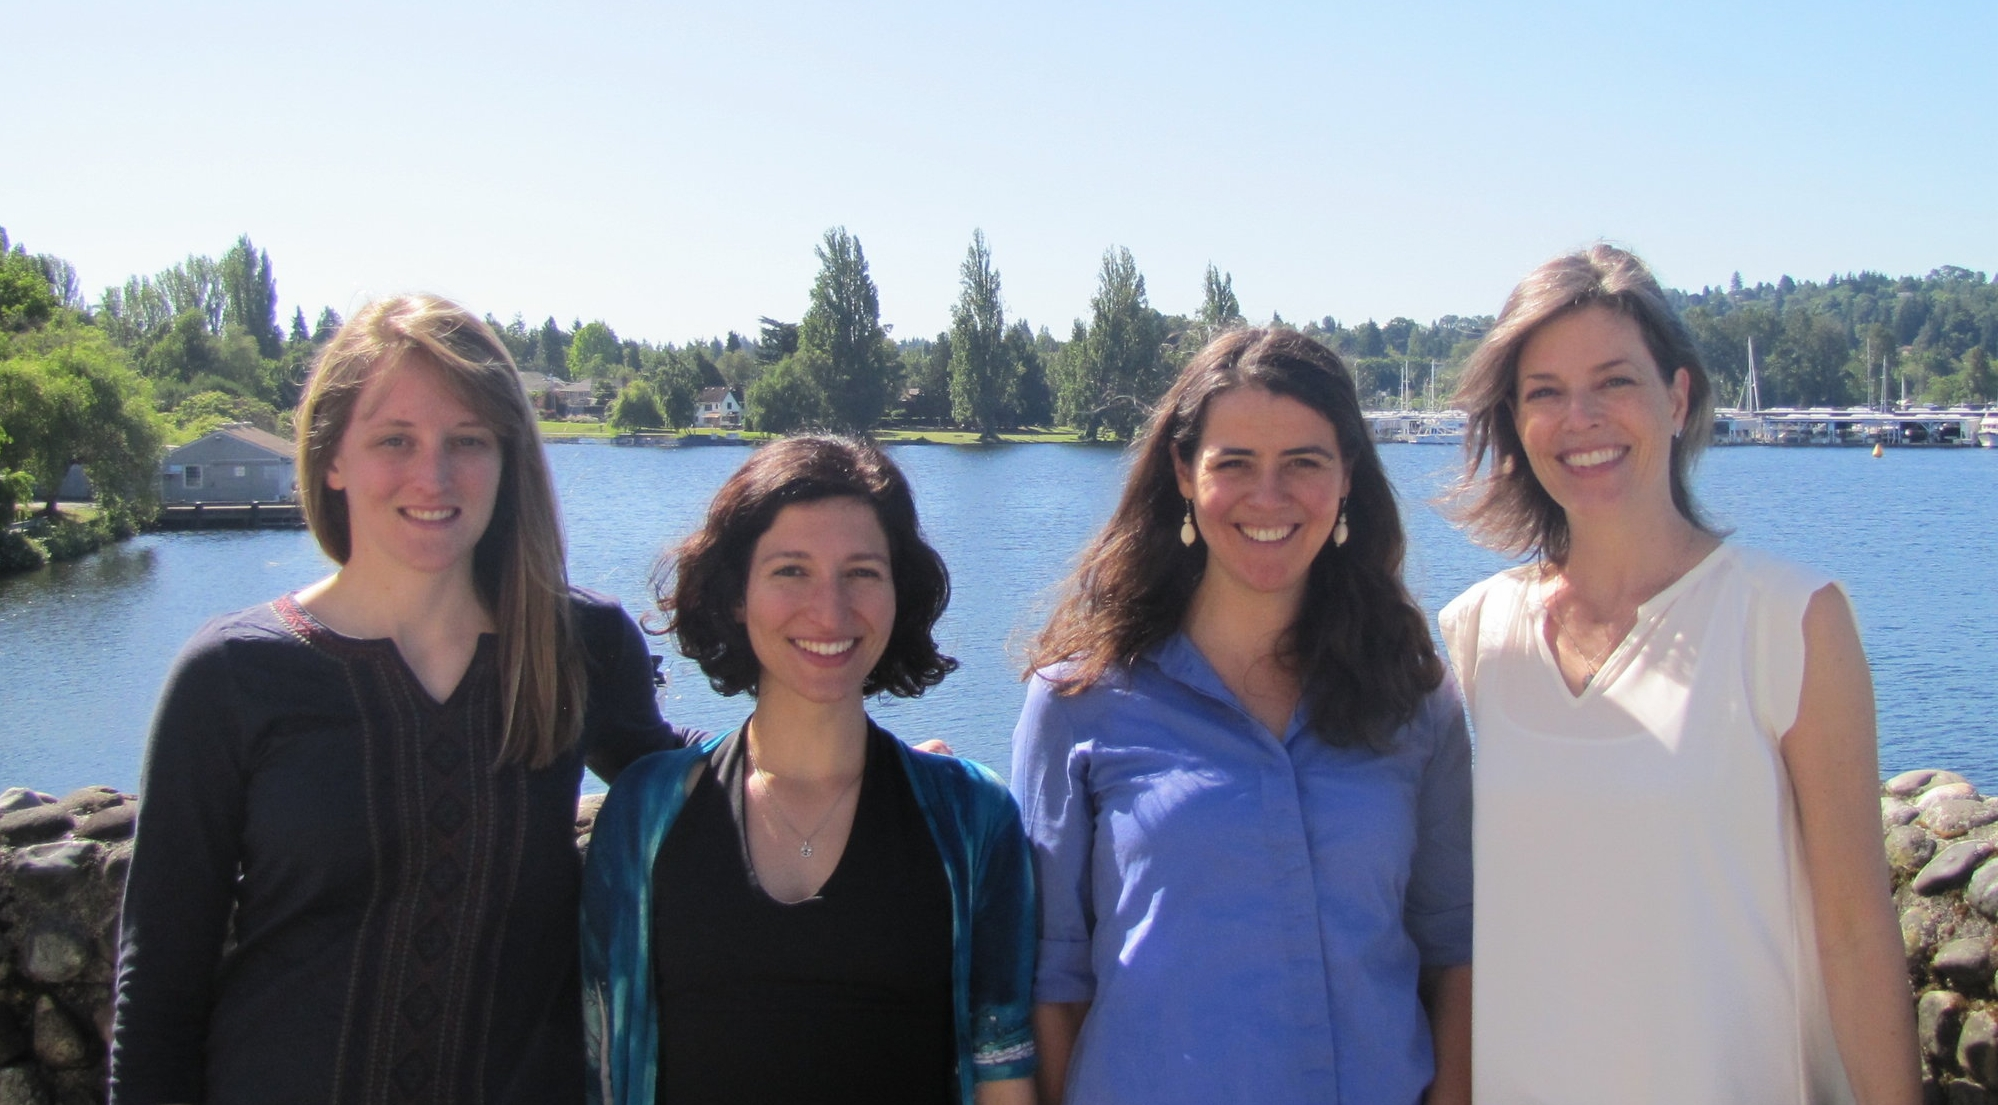 Collaborating on the UW waterfront. Student authors from left to right: Hillary Scannell (Oceanography), Eleni Petrou (Aquatic and Fishery Sciences), Leah Johnson (Oceanography), Katherine Crosman (Public Policy and Governance)